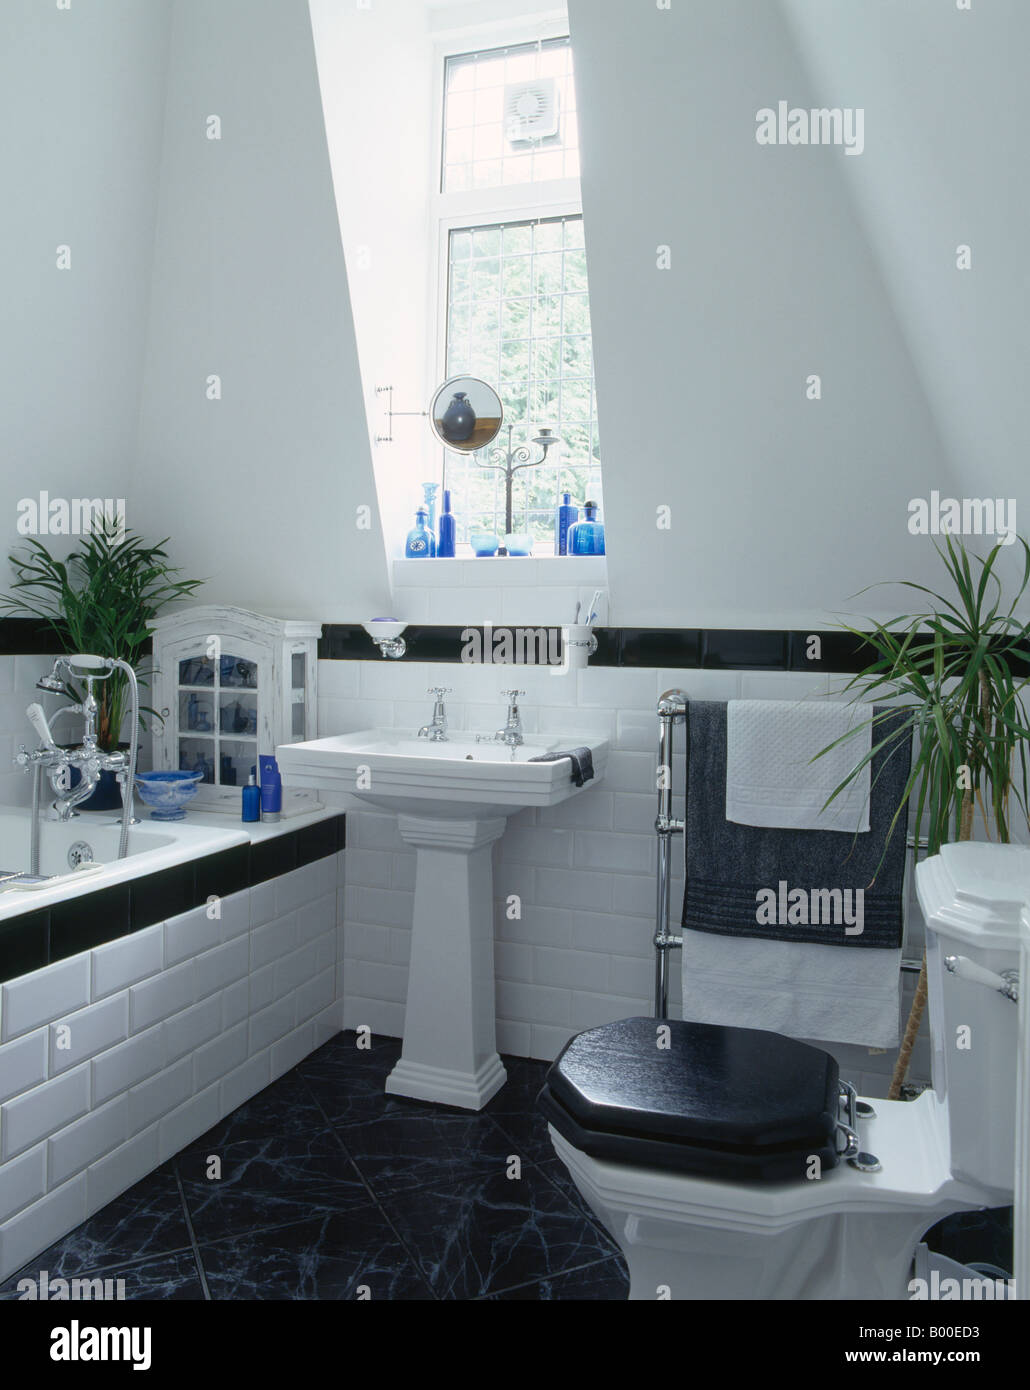 Black Tiled Bathroom Basin In Stock Photos & Black Tiled Bathroom ...